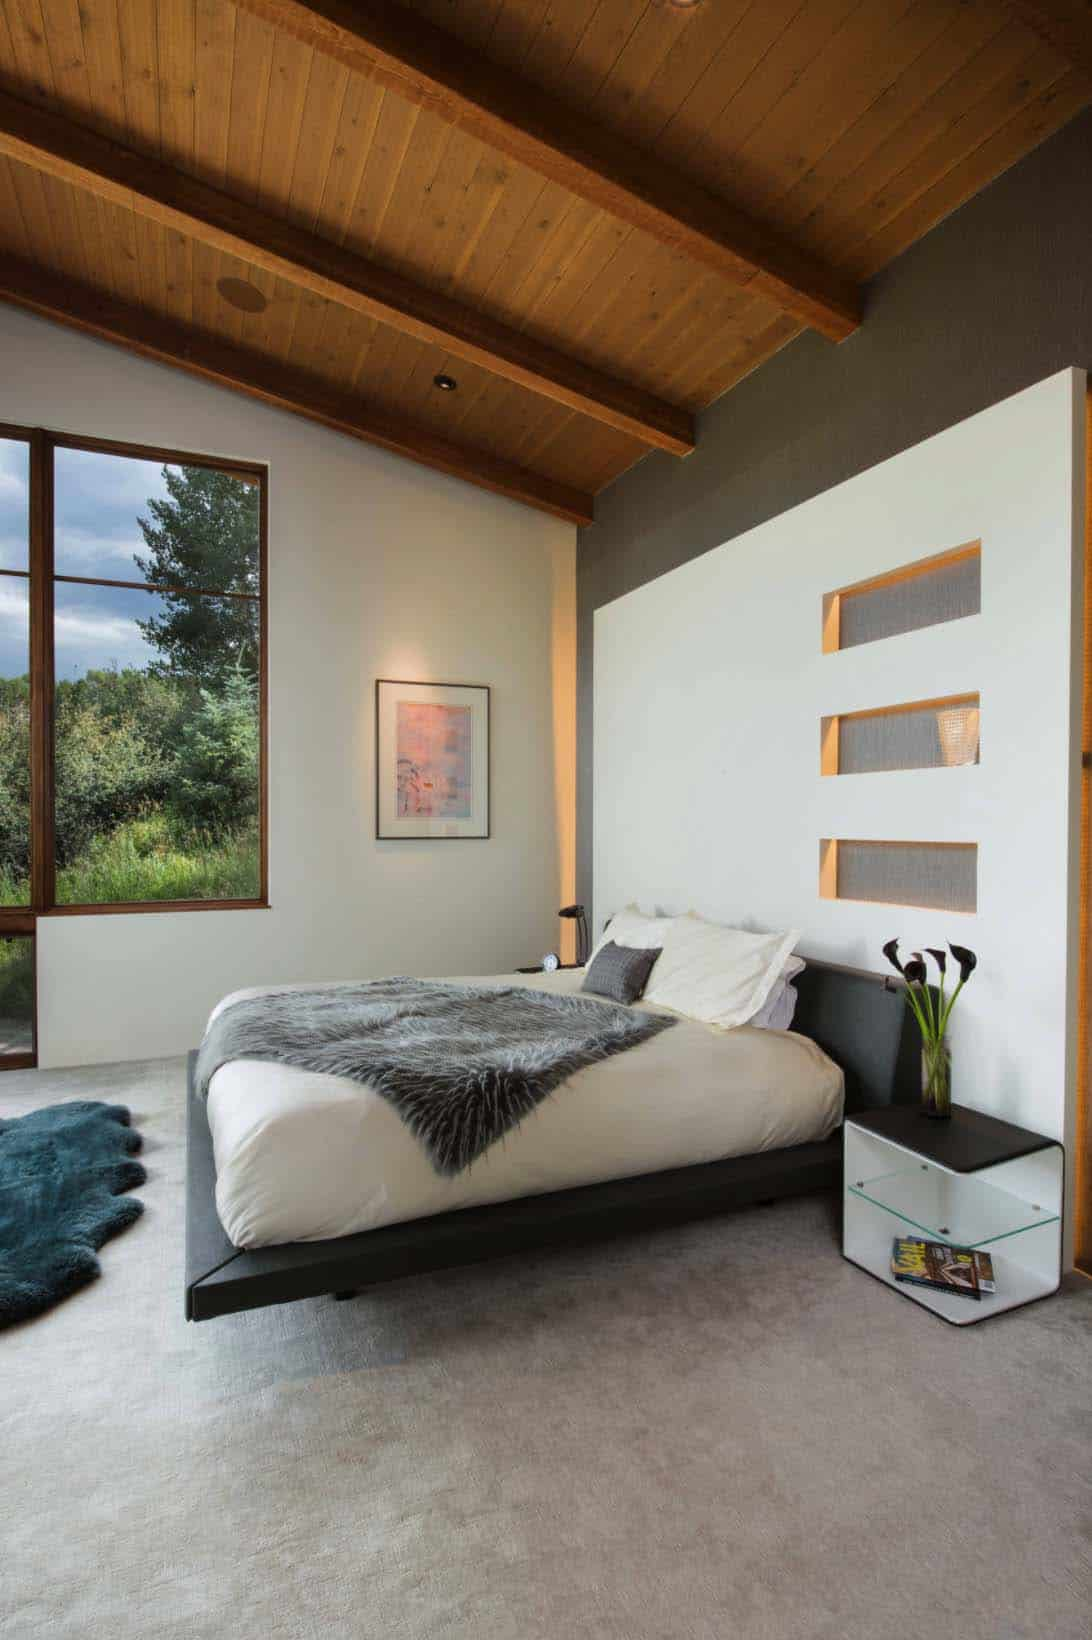 Contemporary Mountain Home Renovation-Berglund Architects-13-1 Kindesign